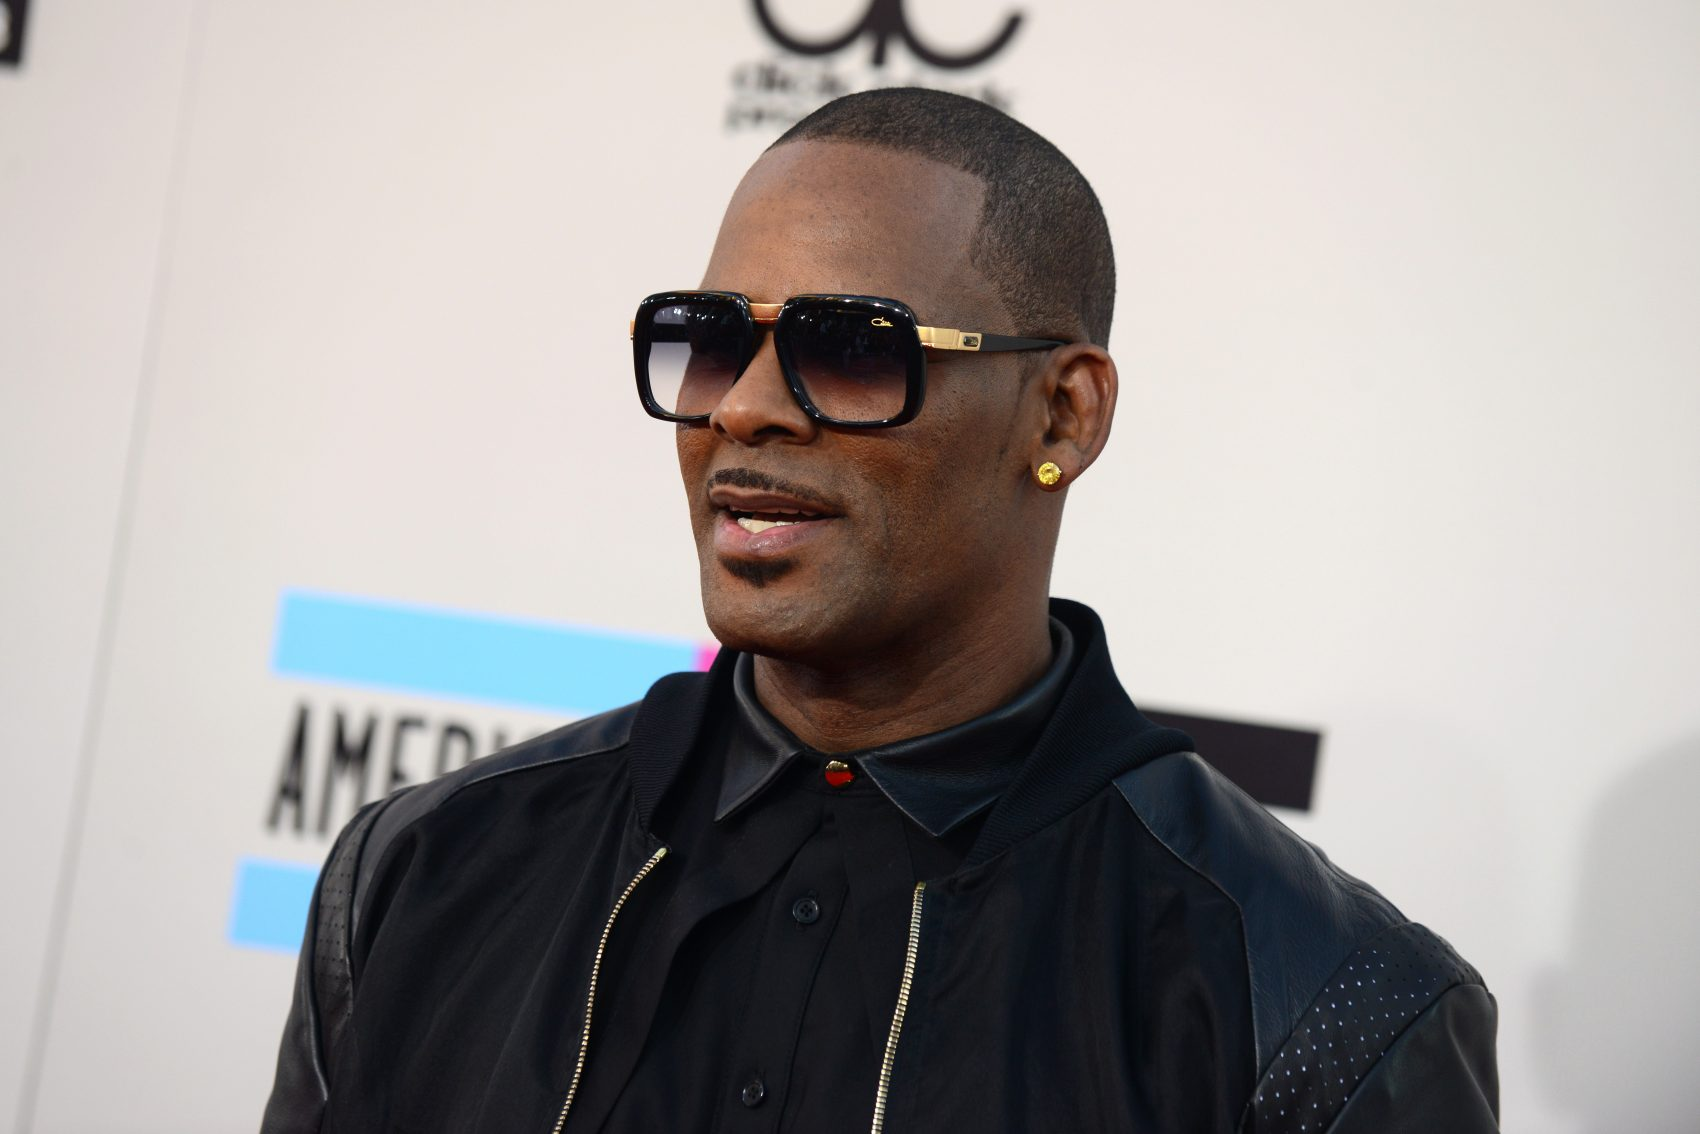 ad2c0f34c7b1 R. Kelly arrives at the American Music Awards at the Nokia Theatre L.A.  Live on